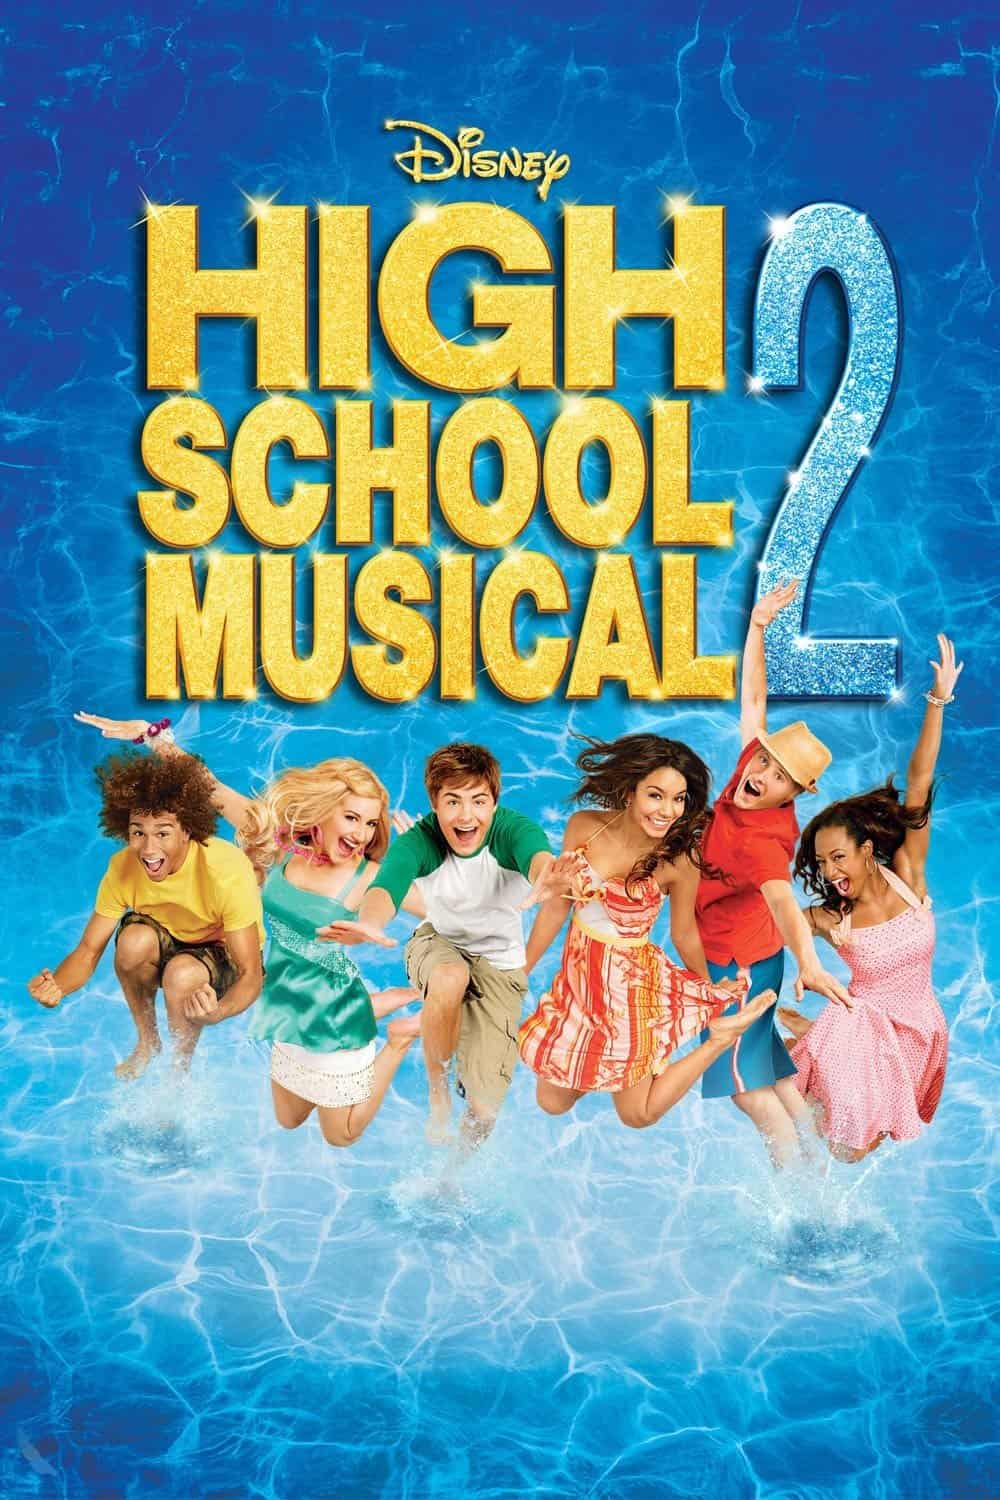 High School Musical, 2006